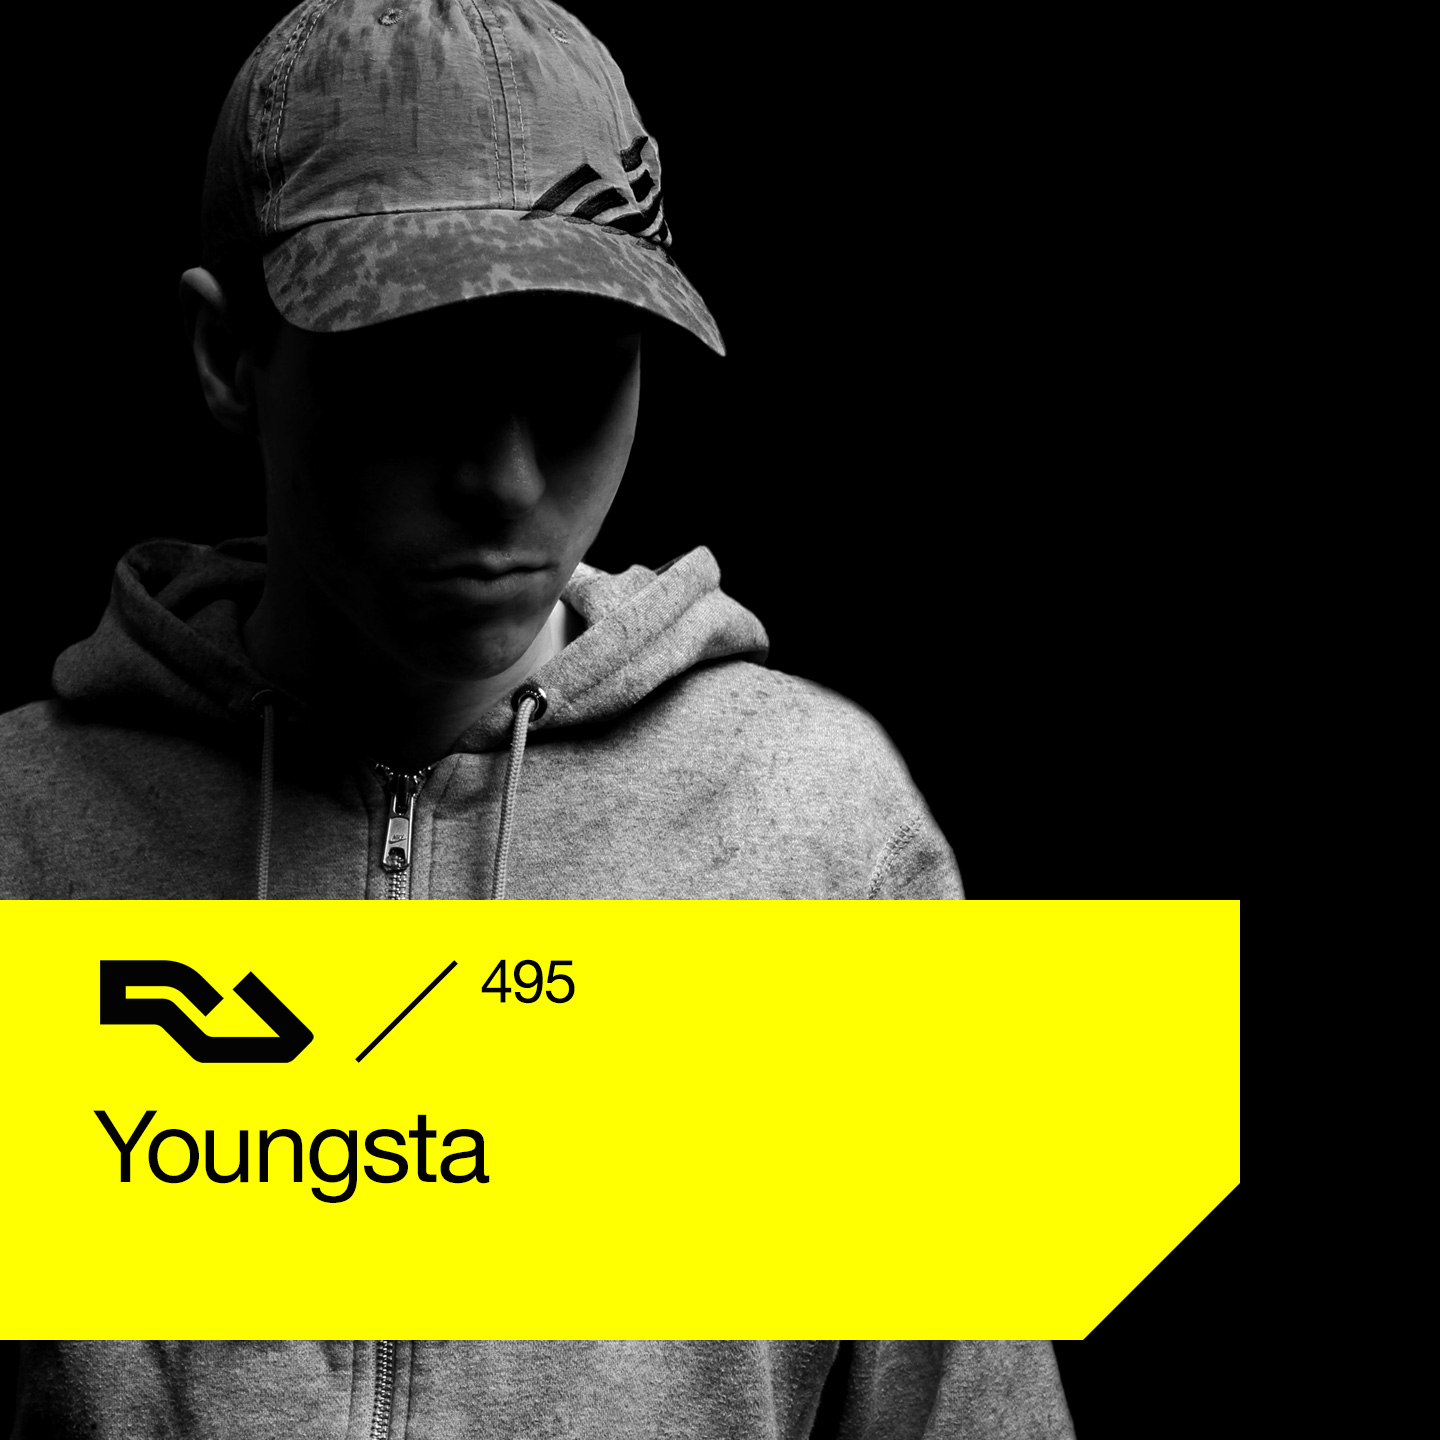 RA.495 Youngsta